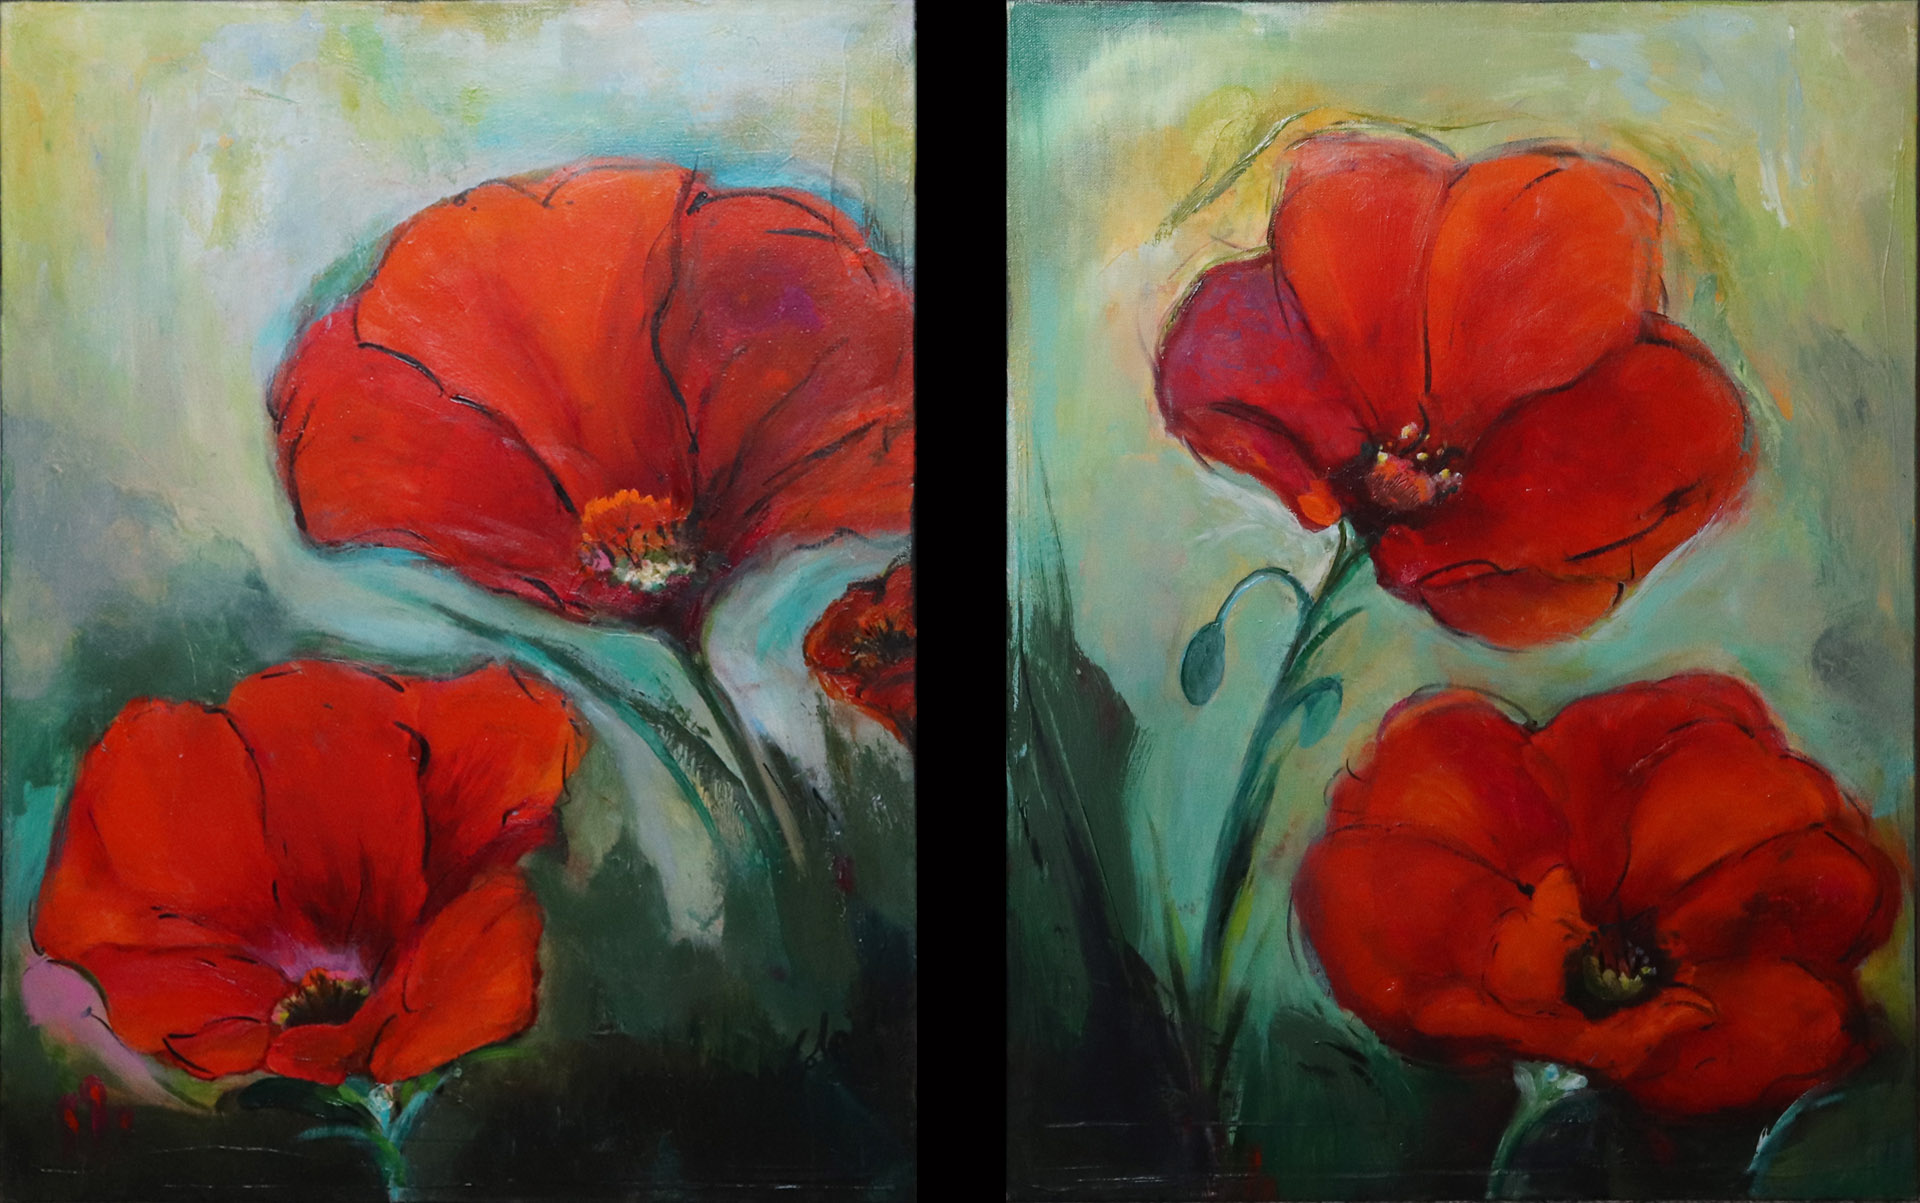 Paintings that go well together, liquid acrylic painting, poppy painting, red abstract art, Michael Colpitts paintings, Mixed Media on Canvas, abstract painting of flowers, modern abstract paintings, original abstract paintings, large abstract paintings, abstract paintings on canvas